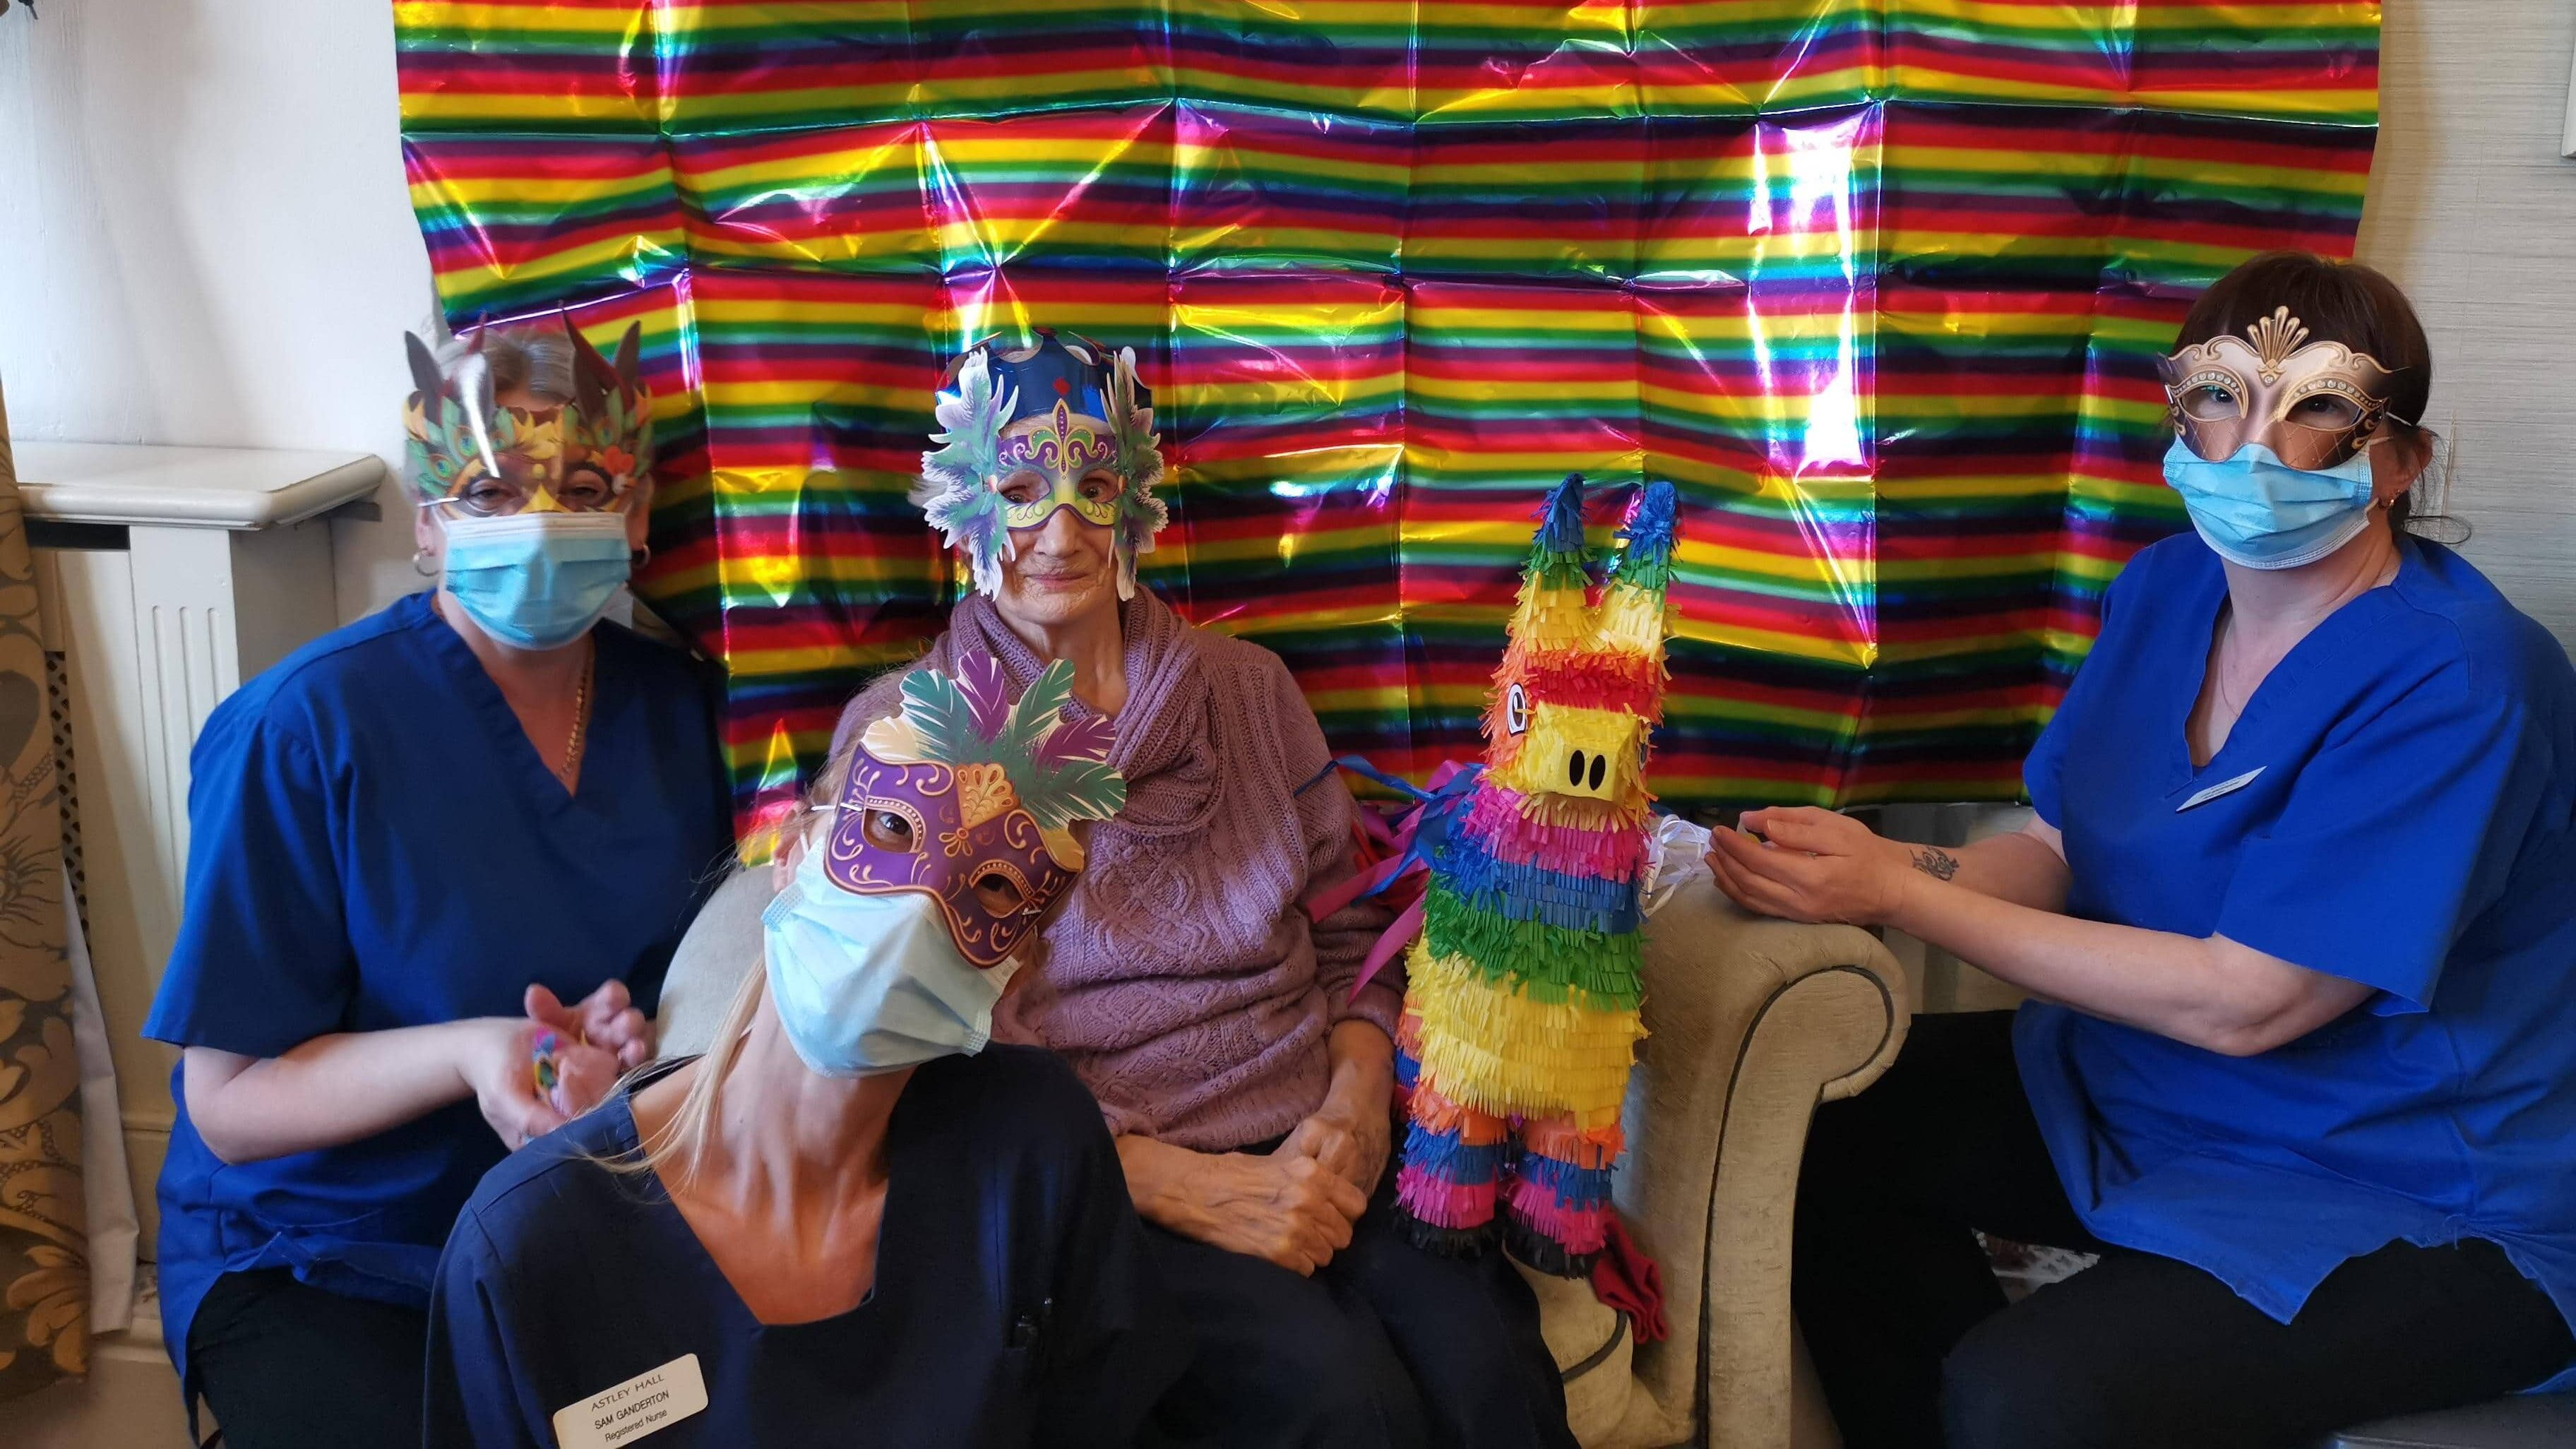 Carnival partying - resident and team